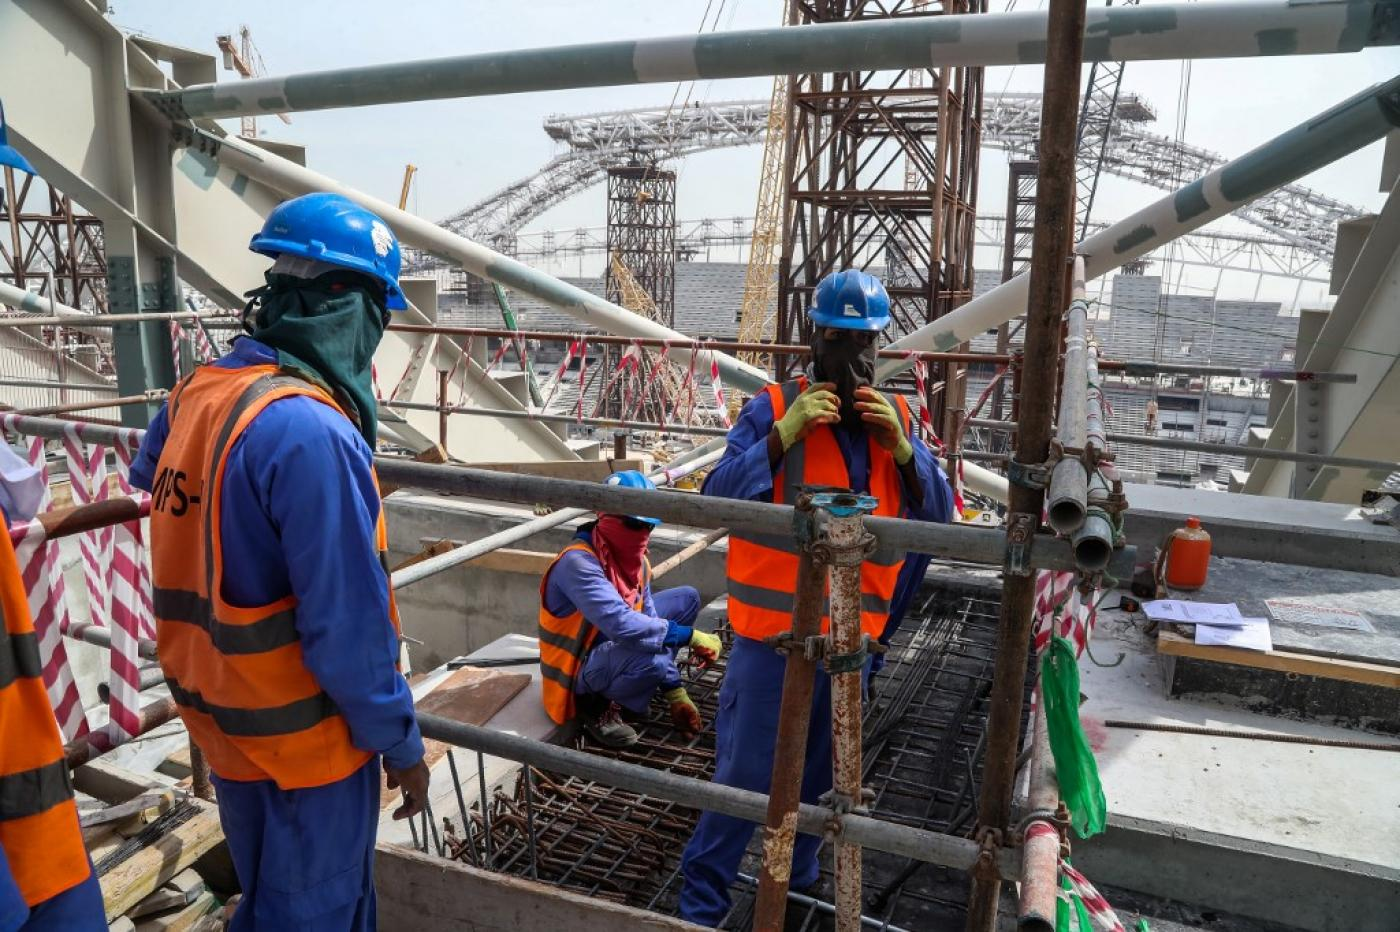 18,500 migrant workers in Qatar are currently involved in the construction of stadiums for the 2022 World Cup